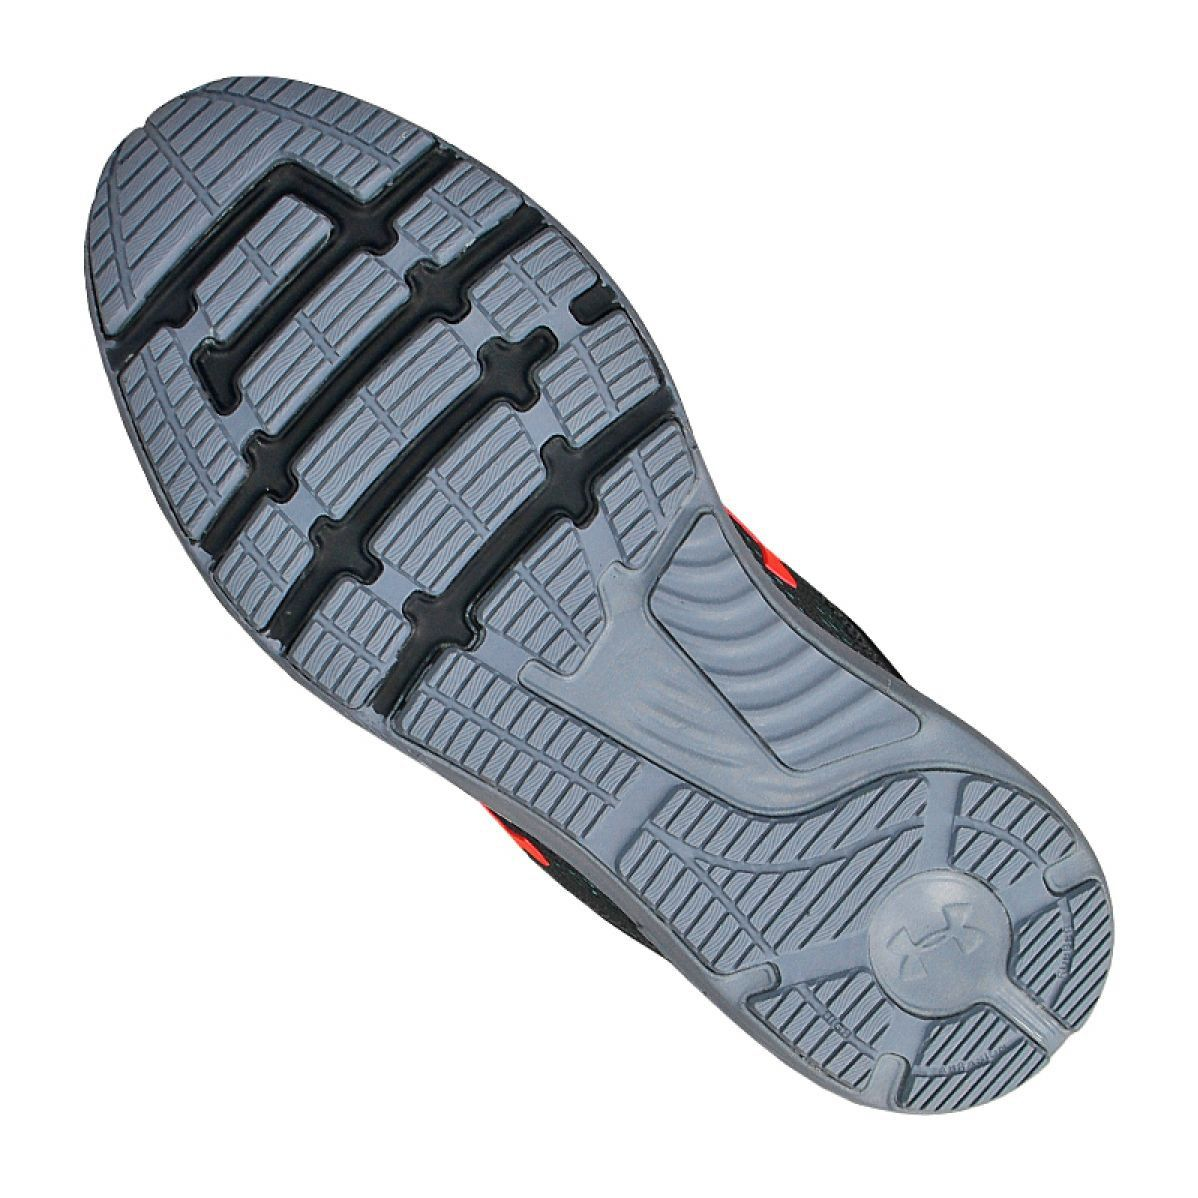 Buty Biegowe Under Armour Charged Bandit 5 M 3021947 403 Szare Zielone Running Shoes Grey Running Shoes Under Armor